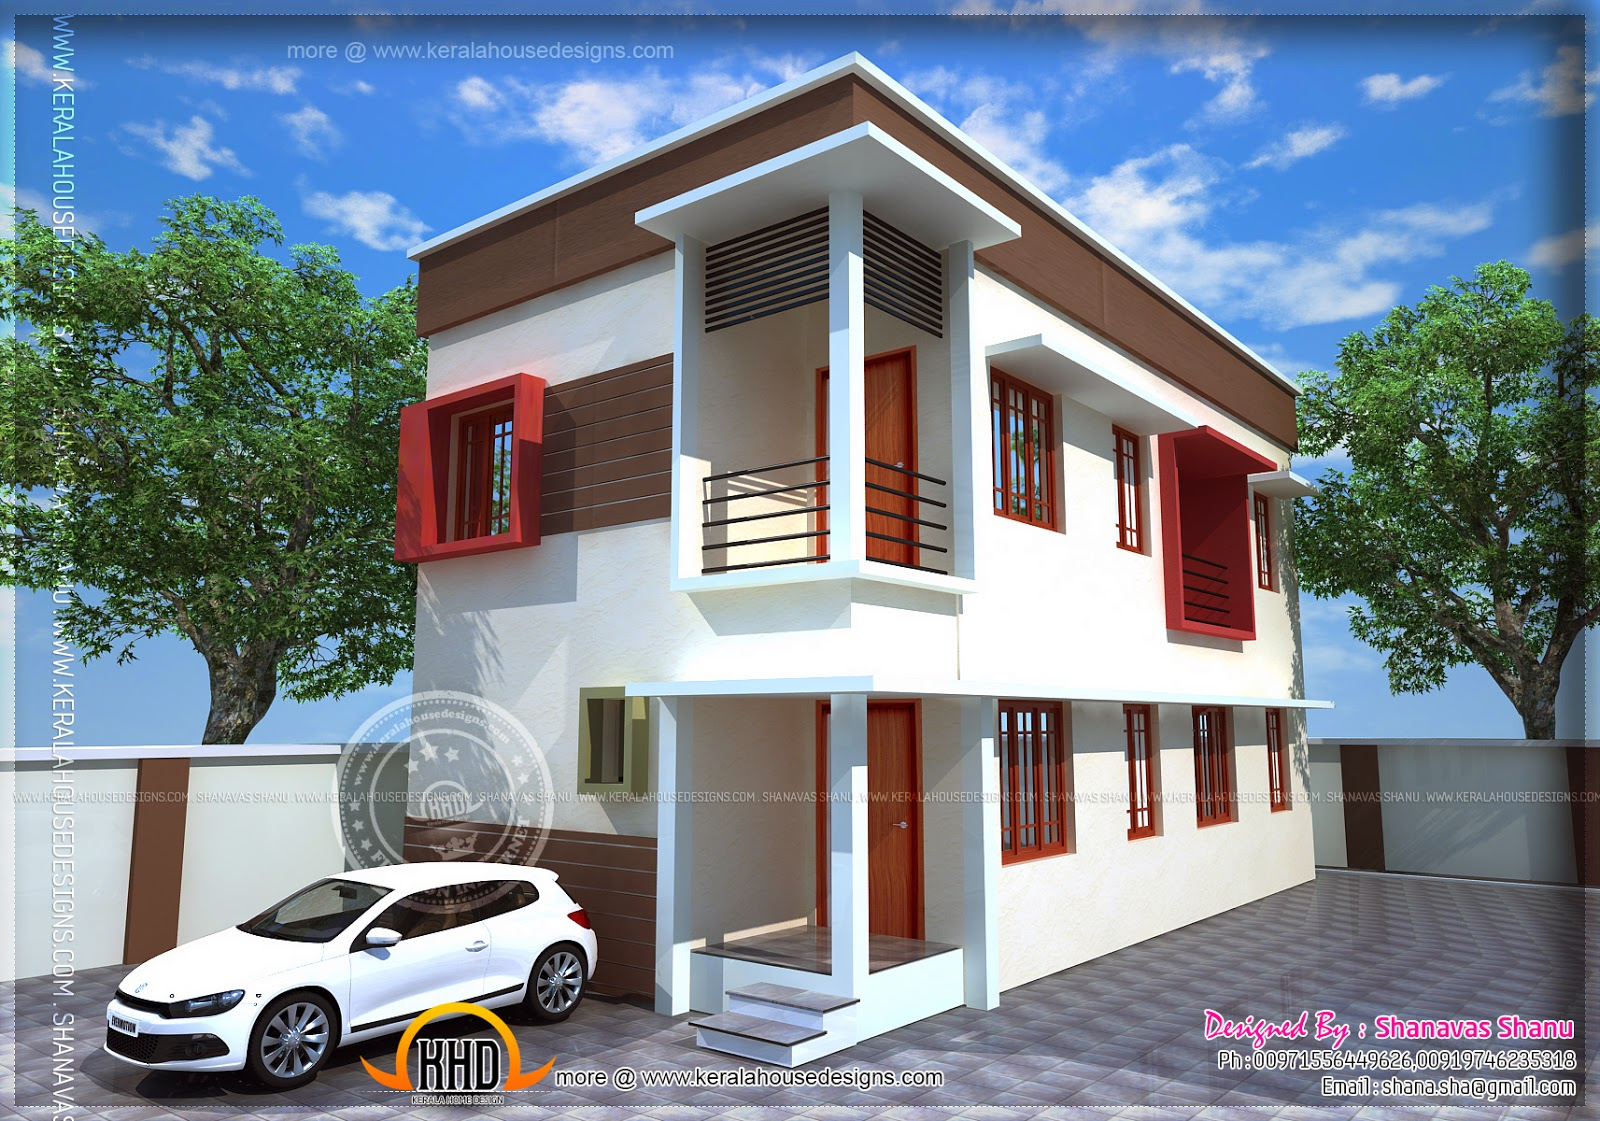 Small plot villa in 2.75 cents of land | Home Kerala Plans